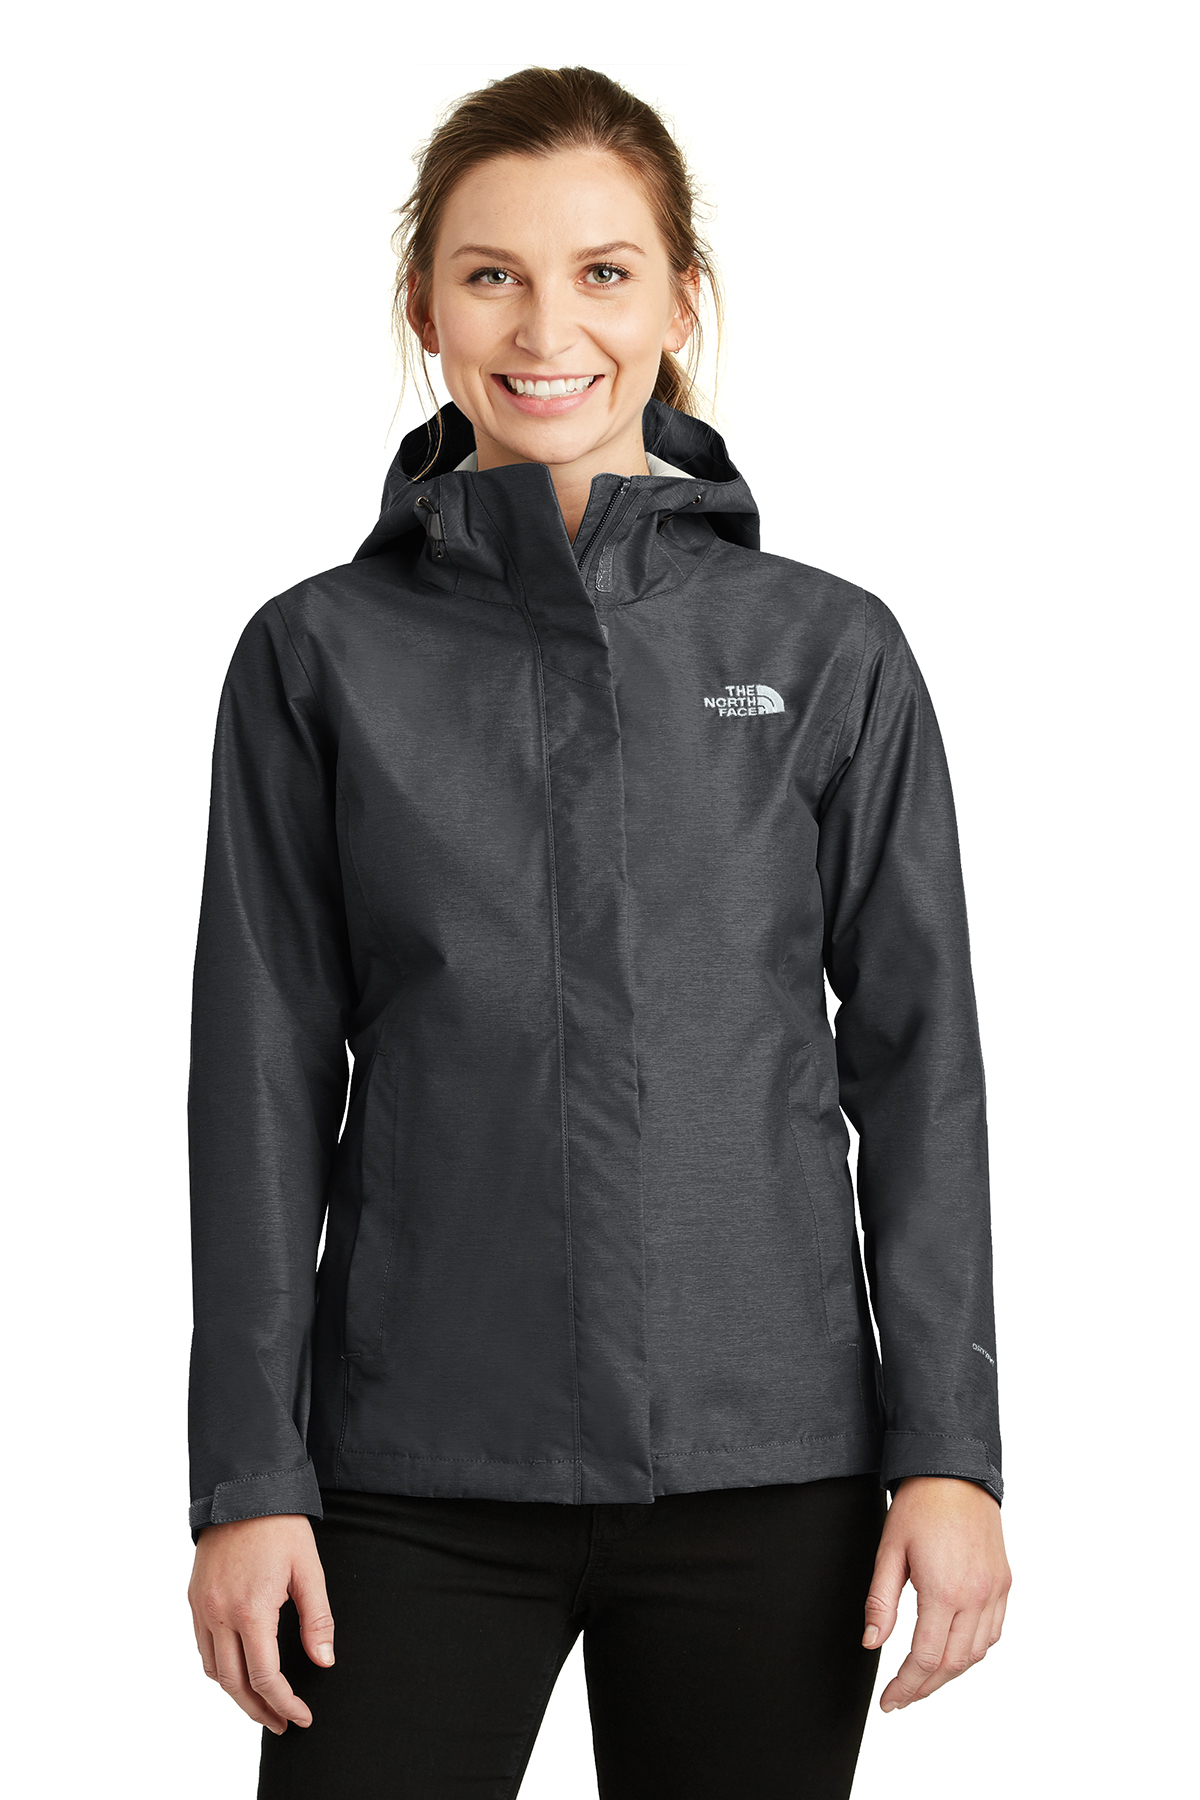 dbe5721a63 The North Face® Ladies DryVent™ Rain Jacket